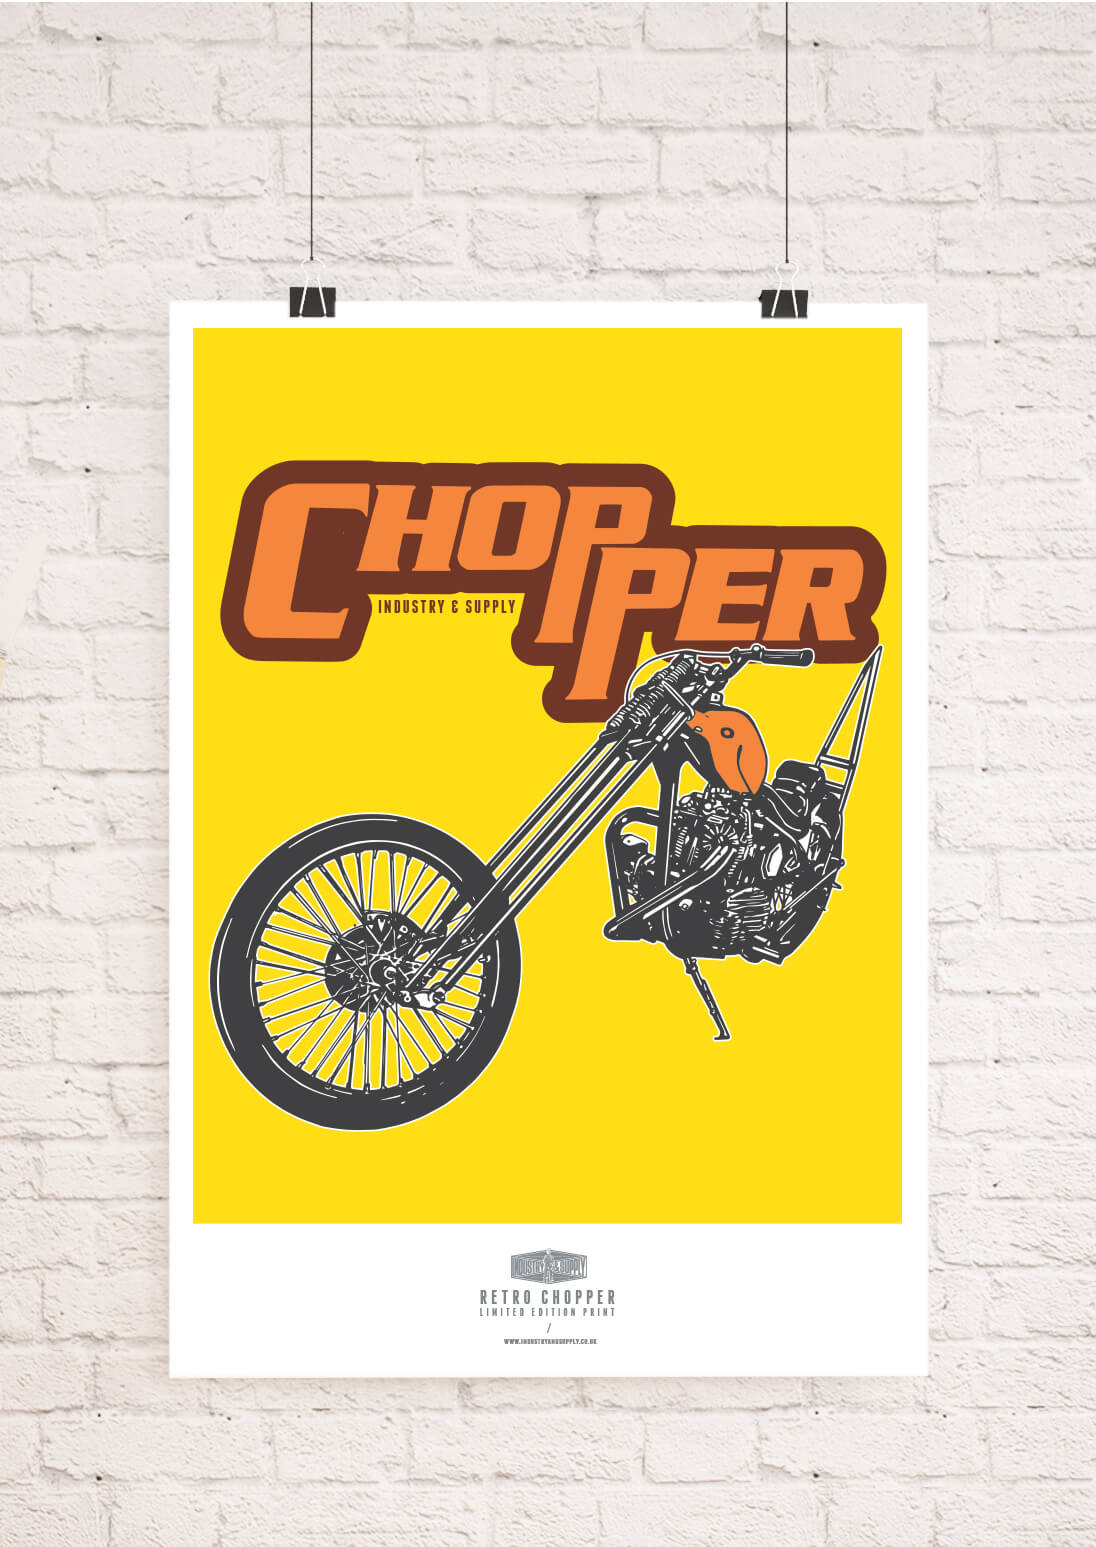 MOTORBIKES WALL ART PRINTS | Industry & Supply